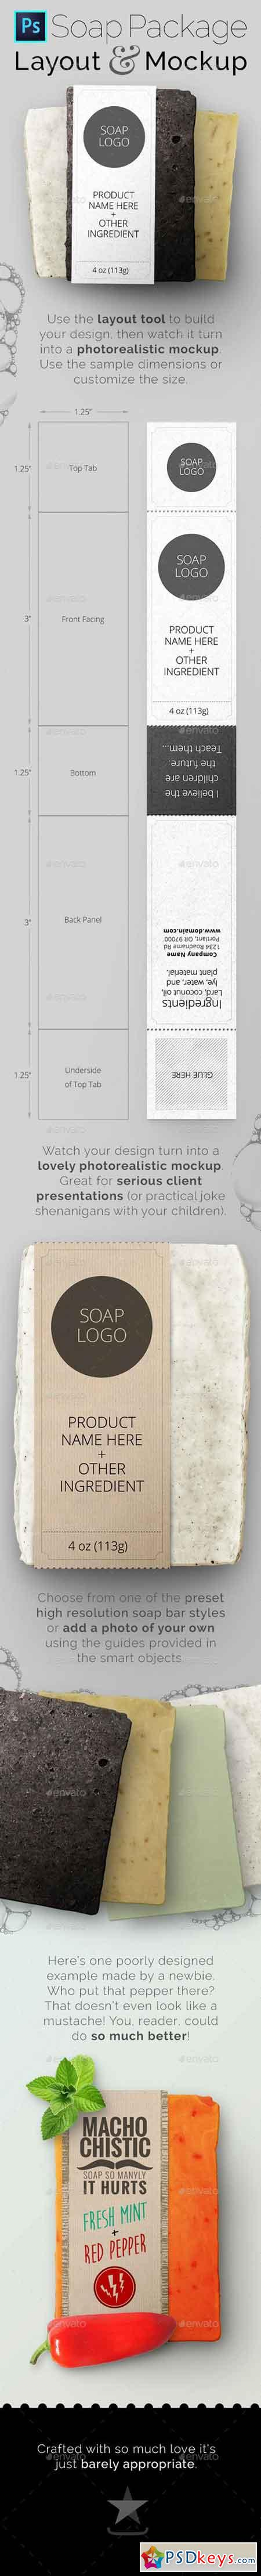 Soap Bar Package Tool and Mockup 15955892